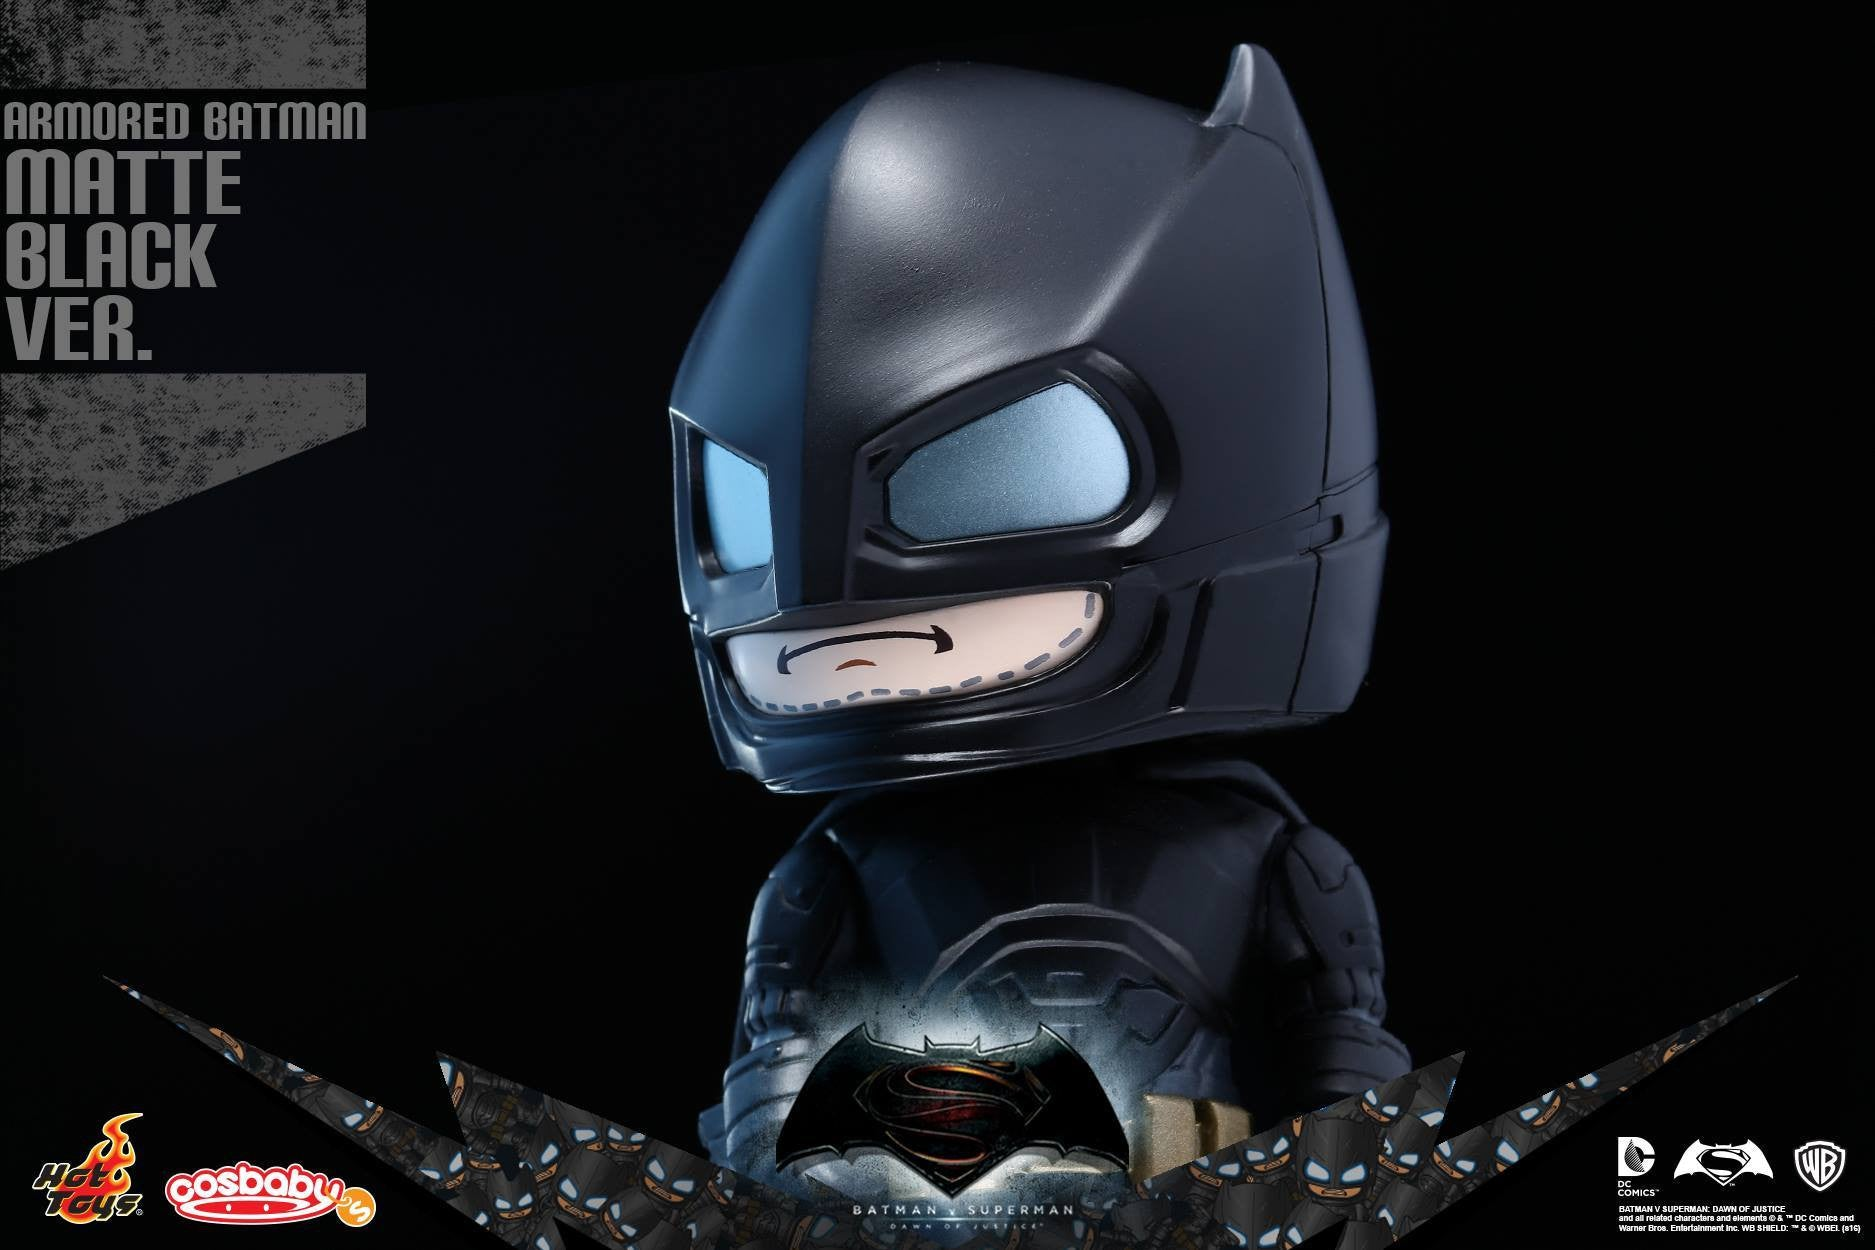 Hot Toys - COSB229-231 - Batman v Superman: Dawn of Justice - Armored Batman (Special Color Versions) Cosbaby (S) Bundle Set - Marvelous Toys - 6